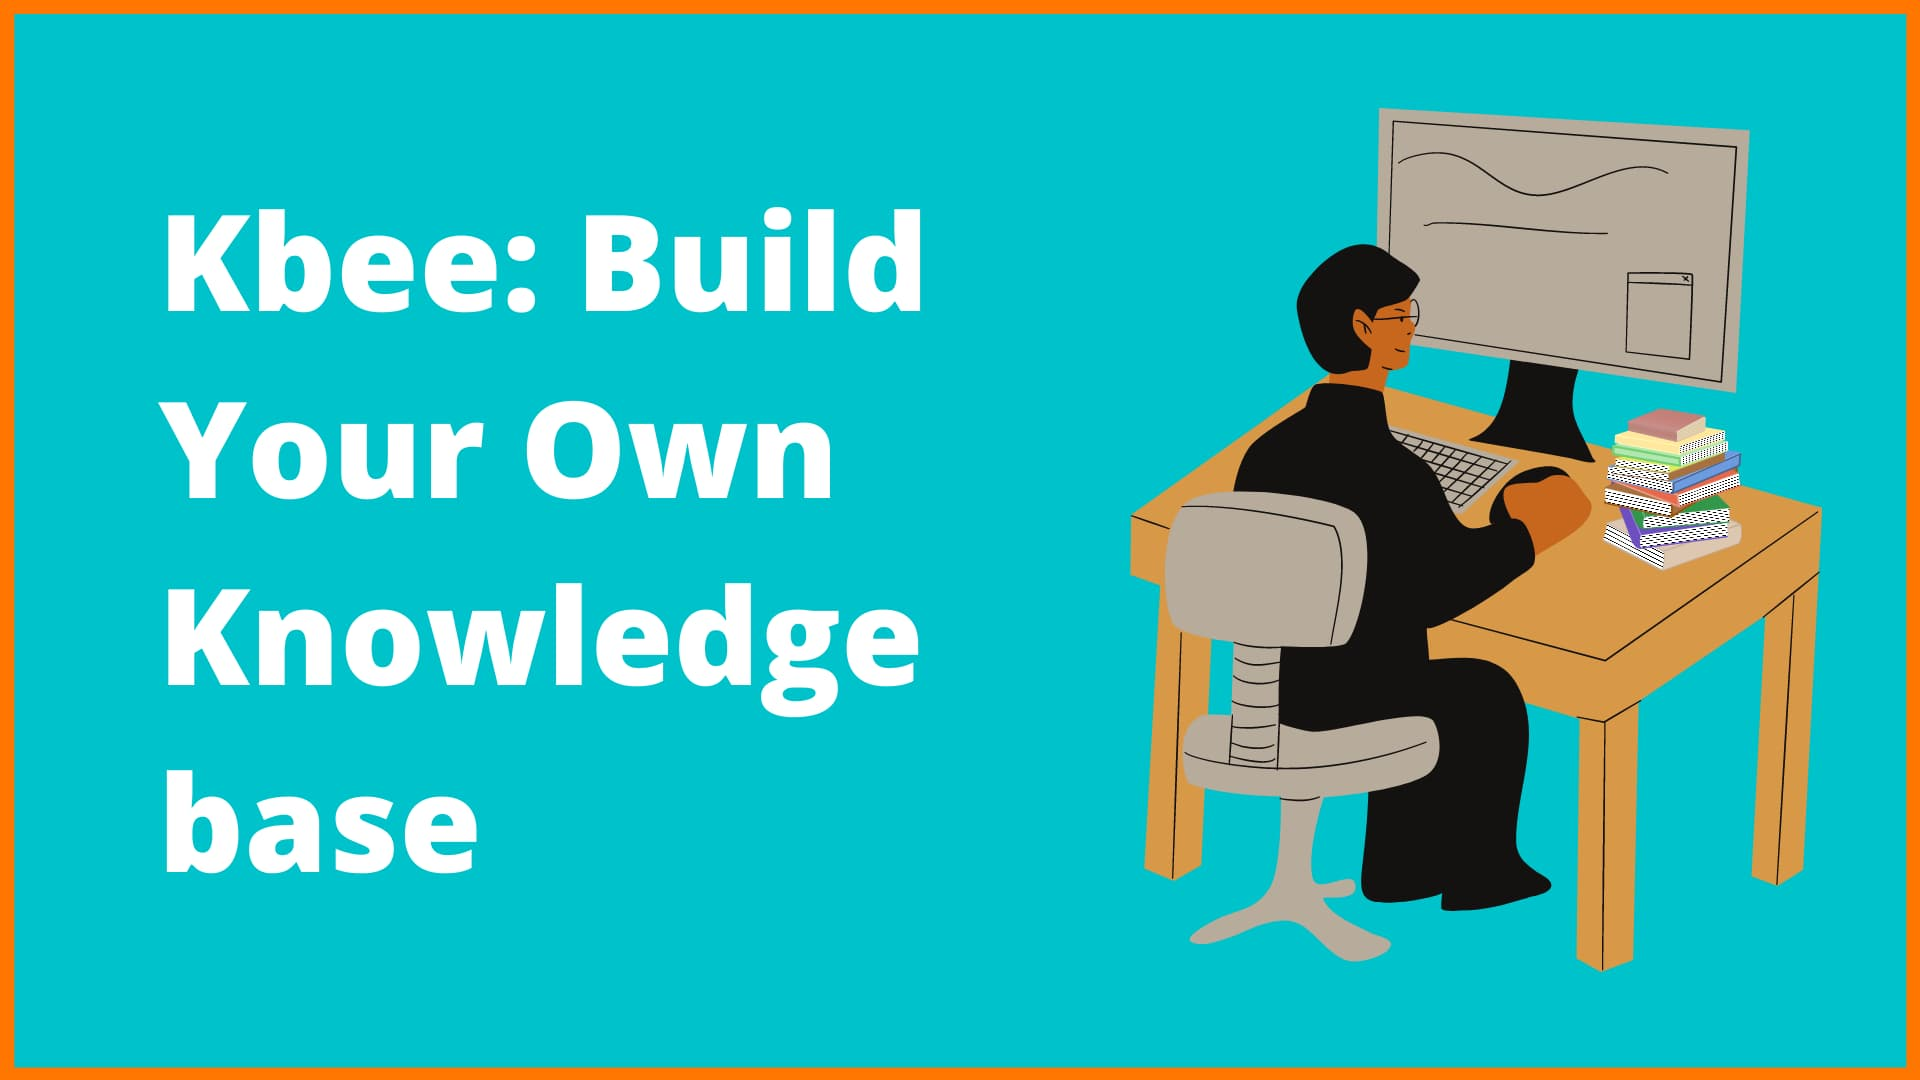 Kbee: Build Your Own Knowledgebase On Google Drive